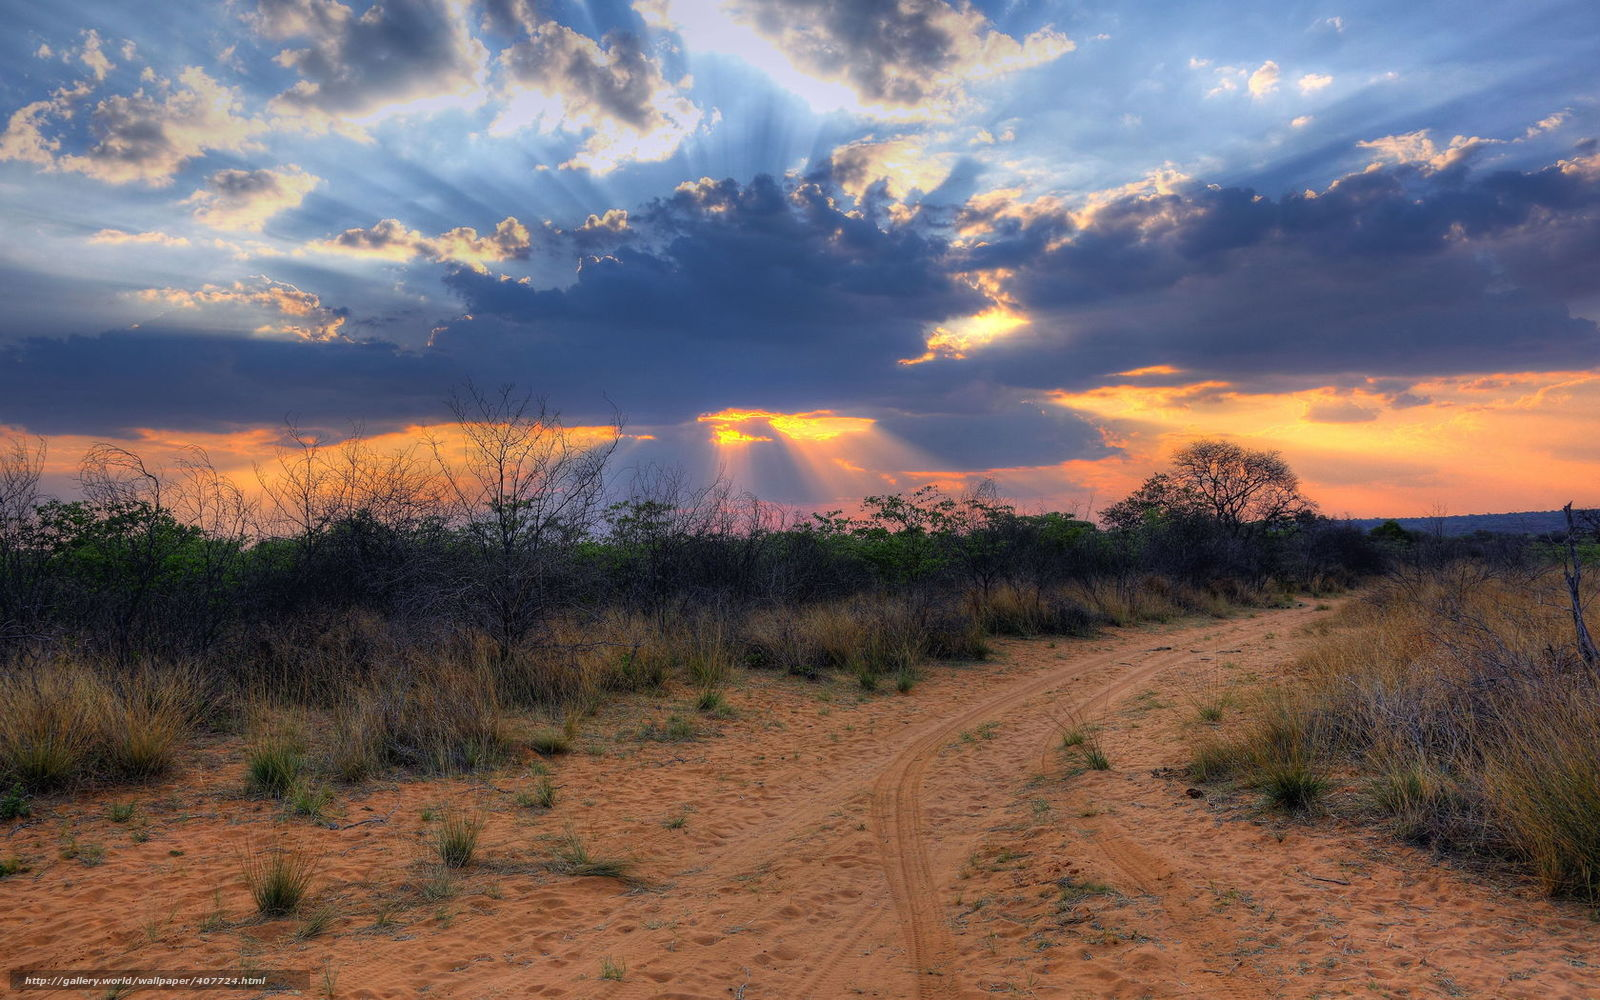 Download wallpaper Africa South Africa Namibia landscape 1600x1000